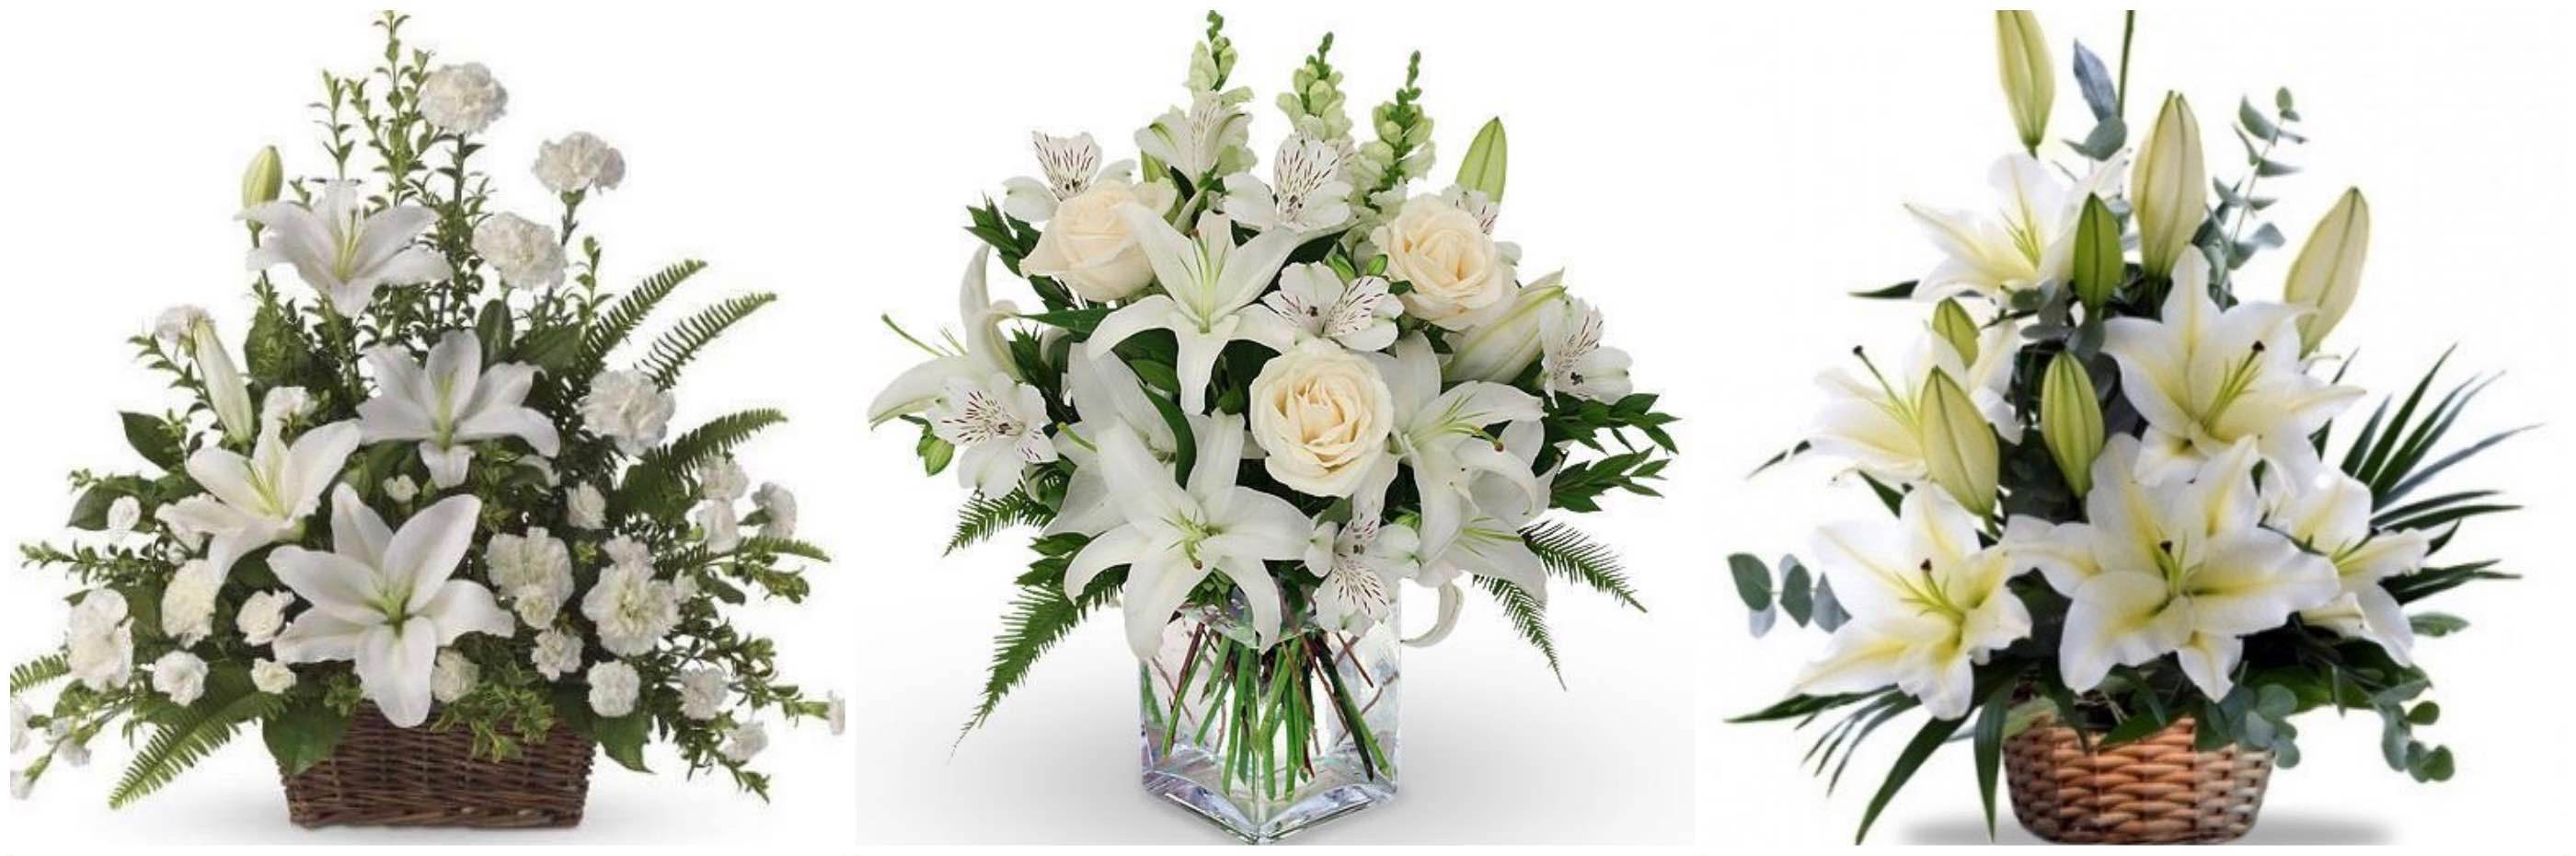 Image result for https://flowerdeliveryphilippines.net/sympathy-funeral-flowers-manila/